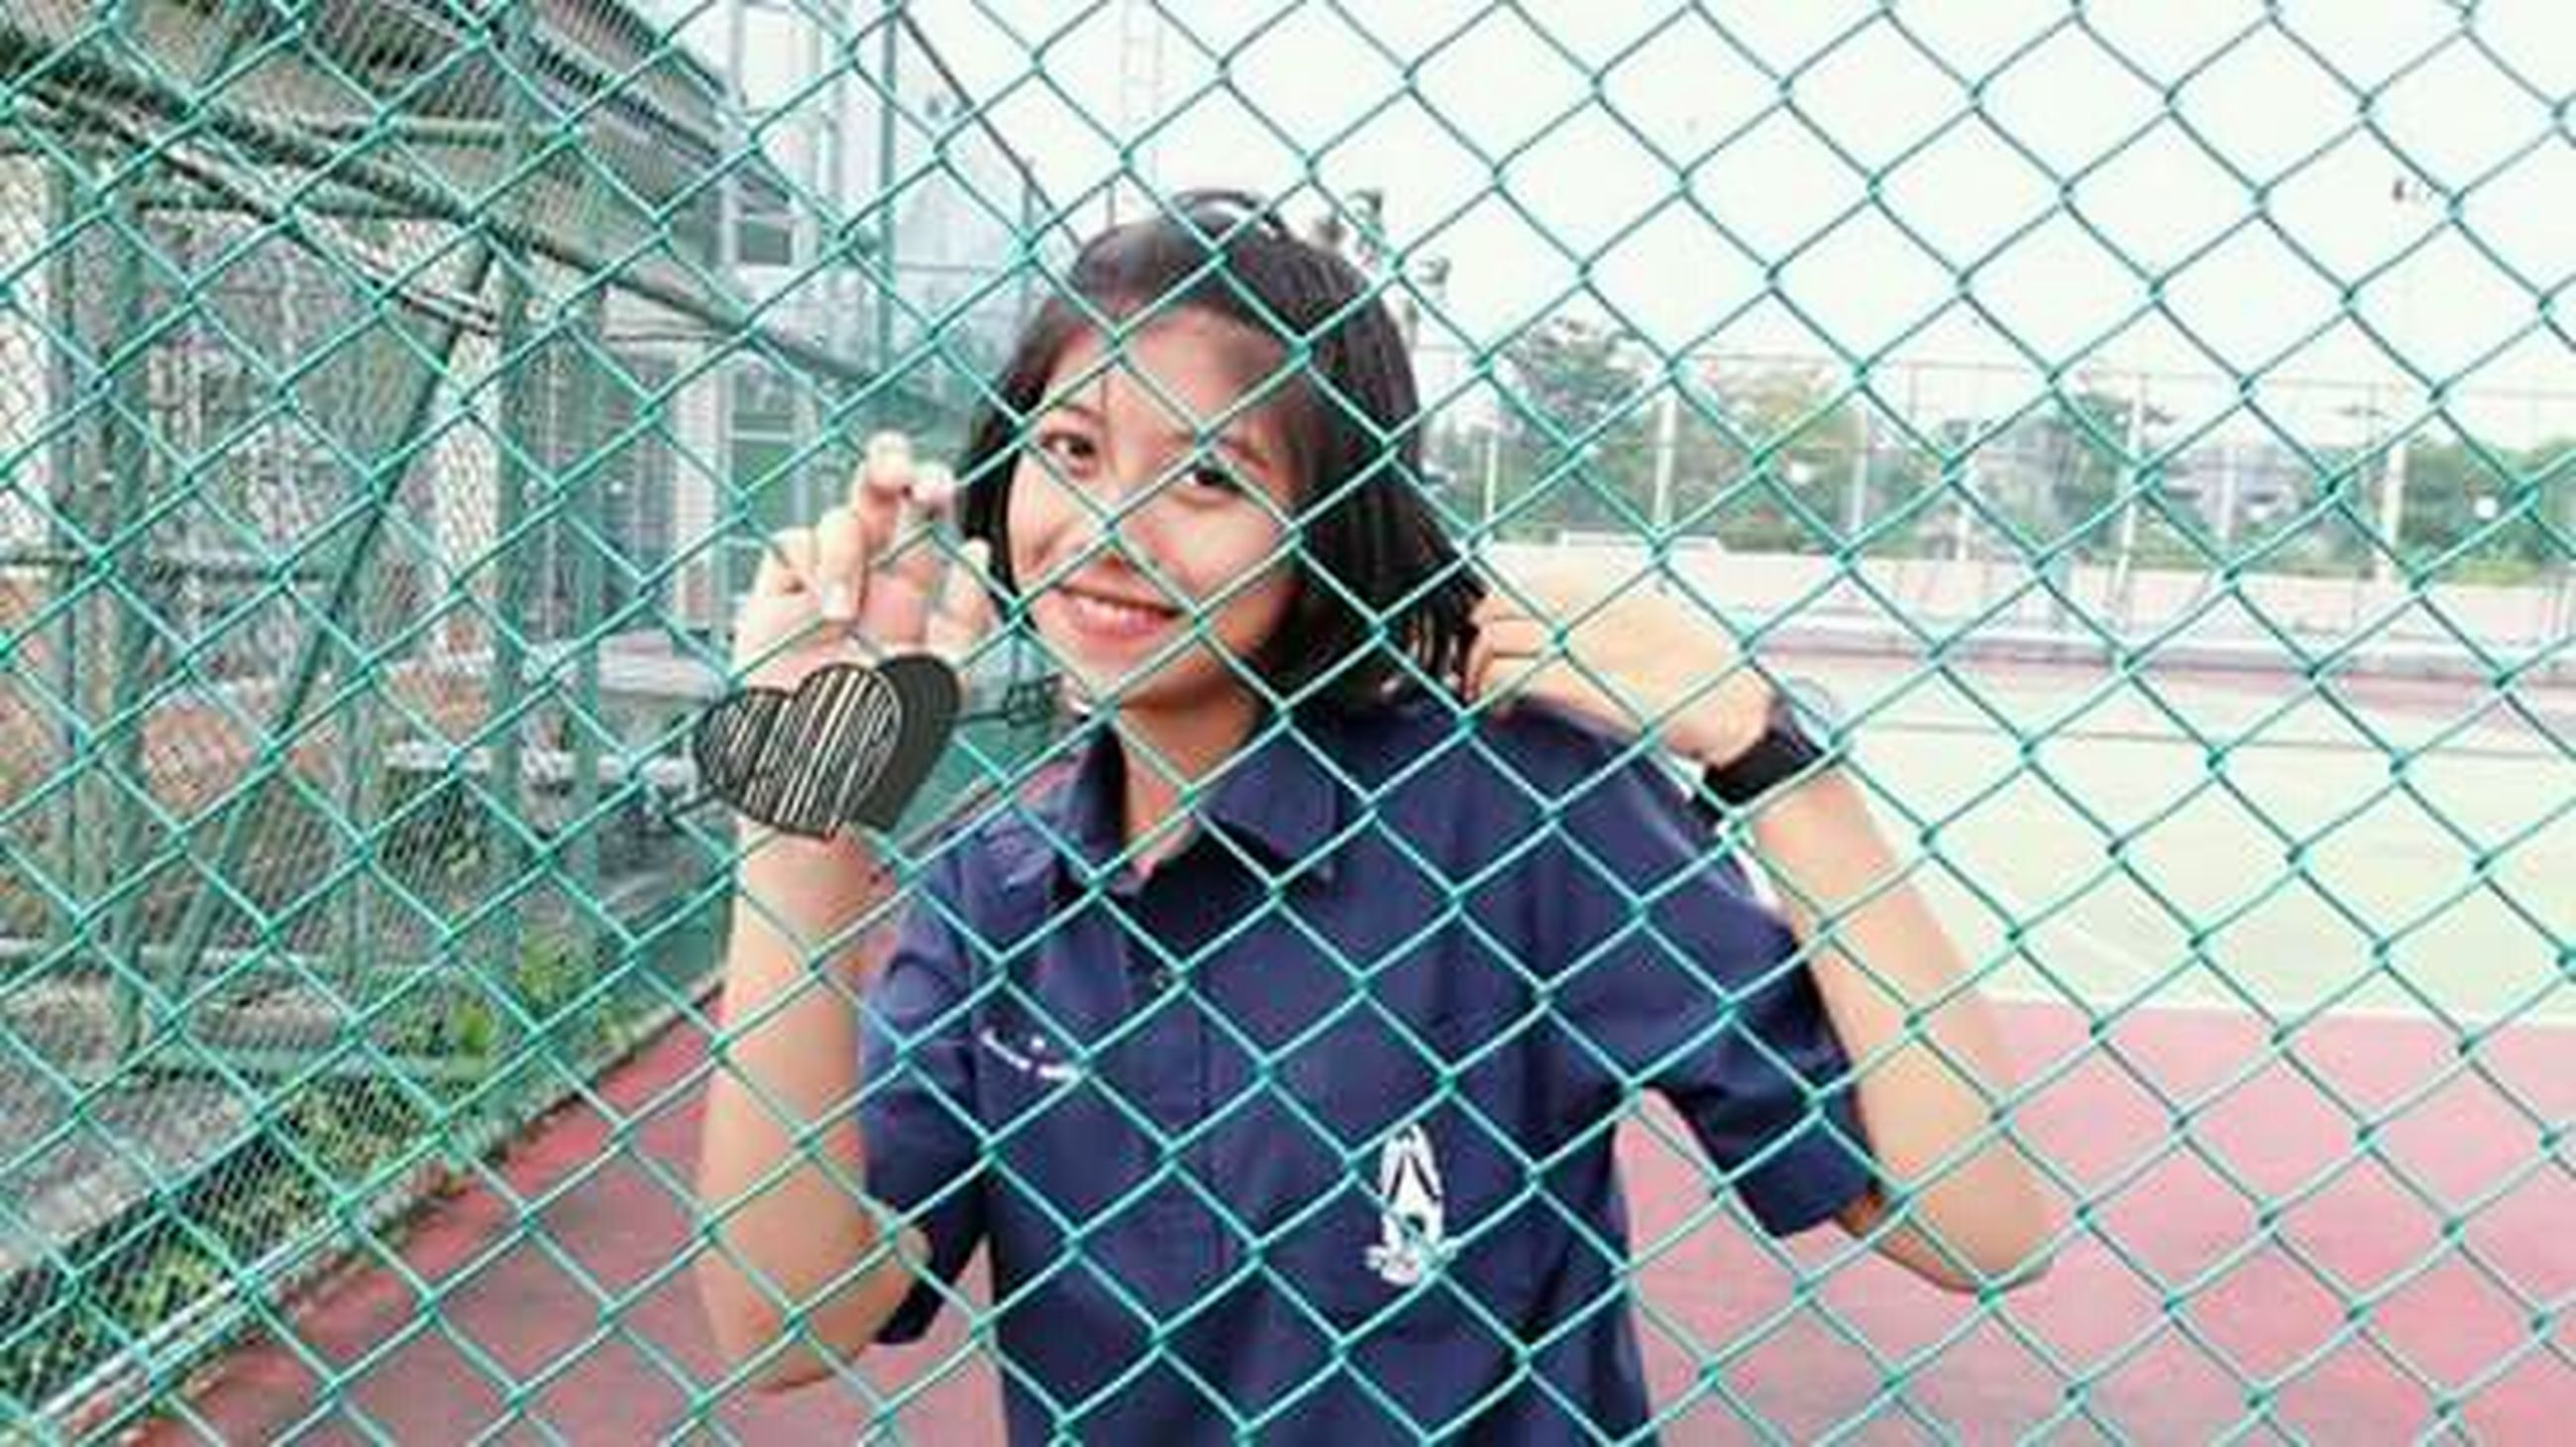 chainlink fence, fence, disappointment, one person, leaning, youth culture, teenager, people, grid, sport, front view, black hair, outdoors, wire mesh, introspection, young women, young adult, sports clothing, adult, day, adults only